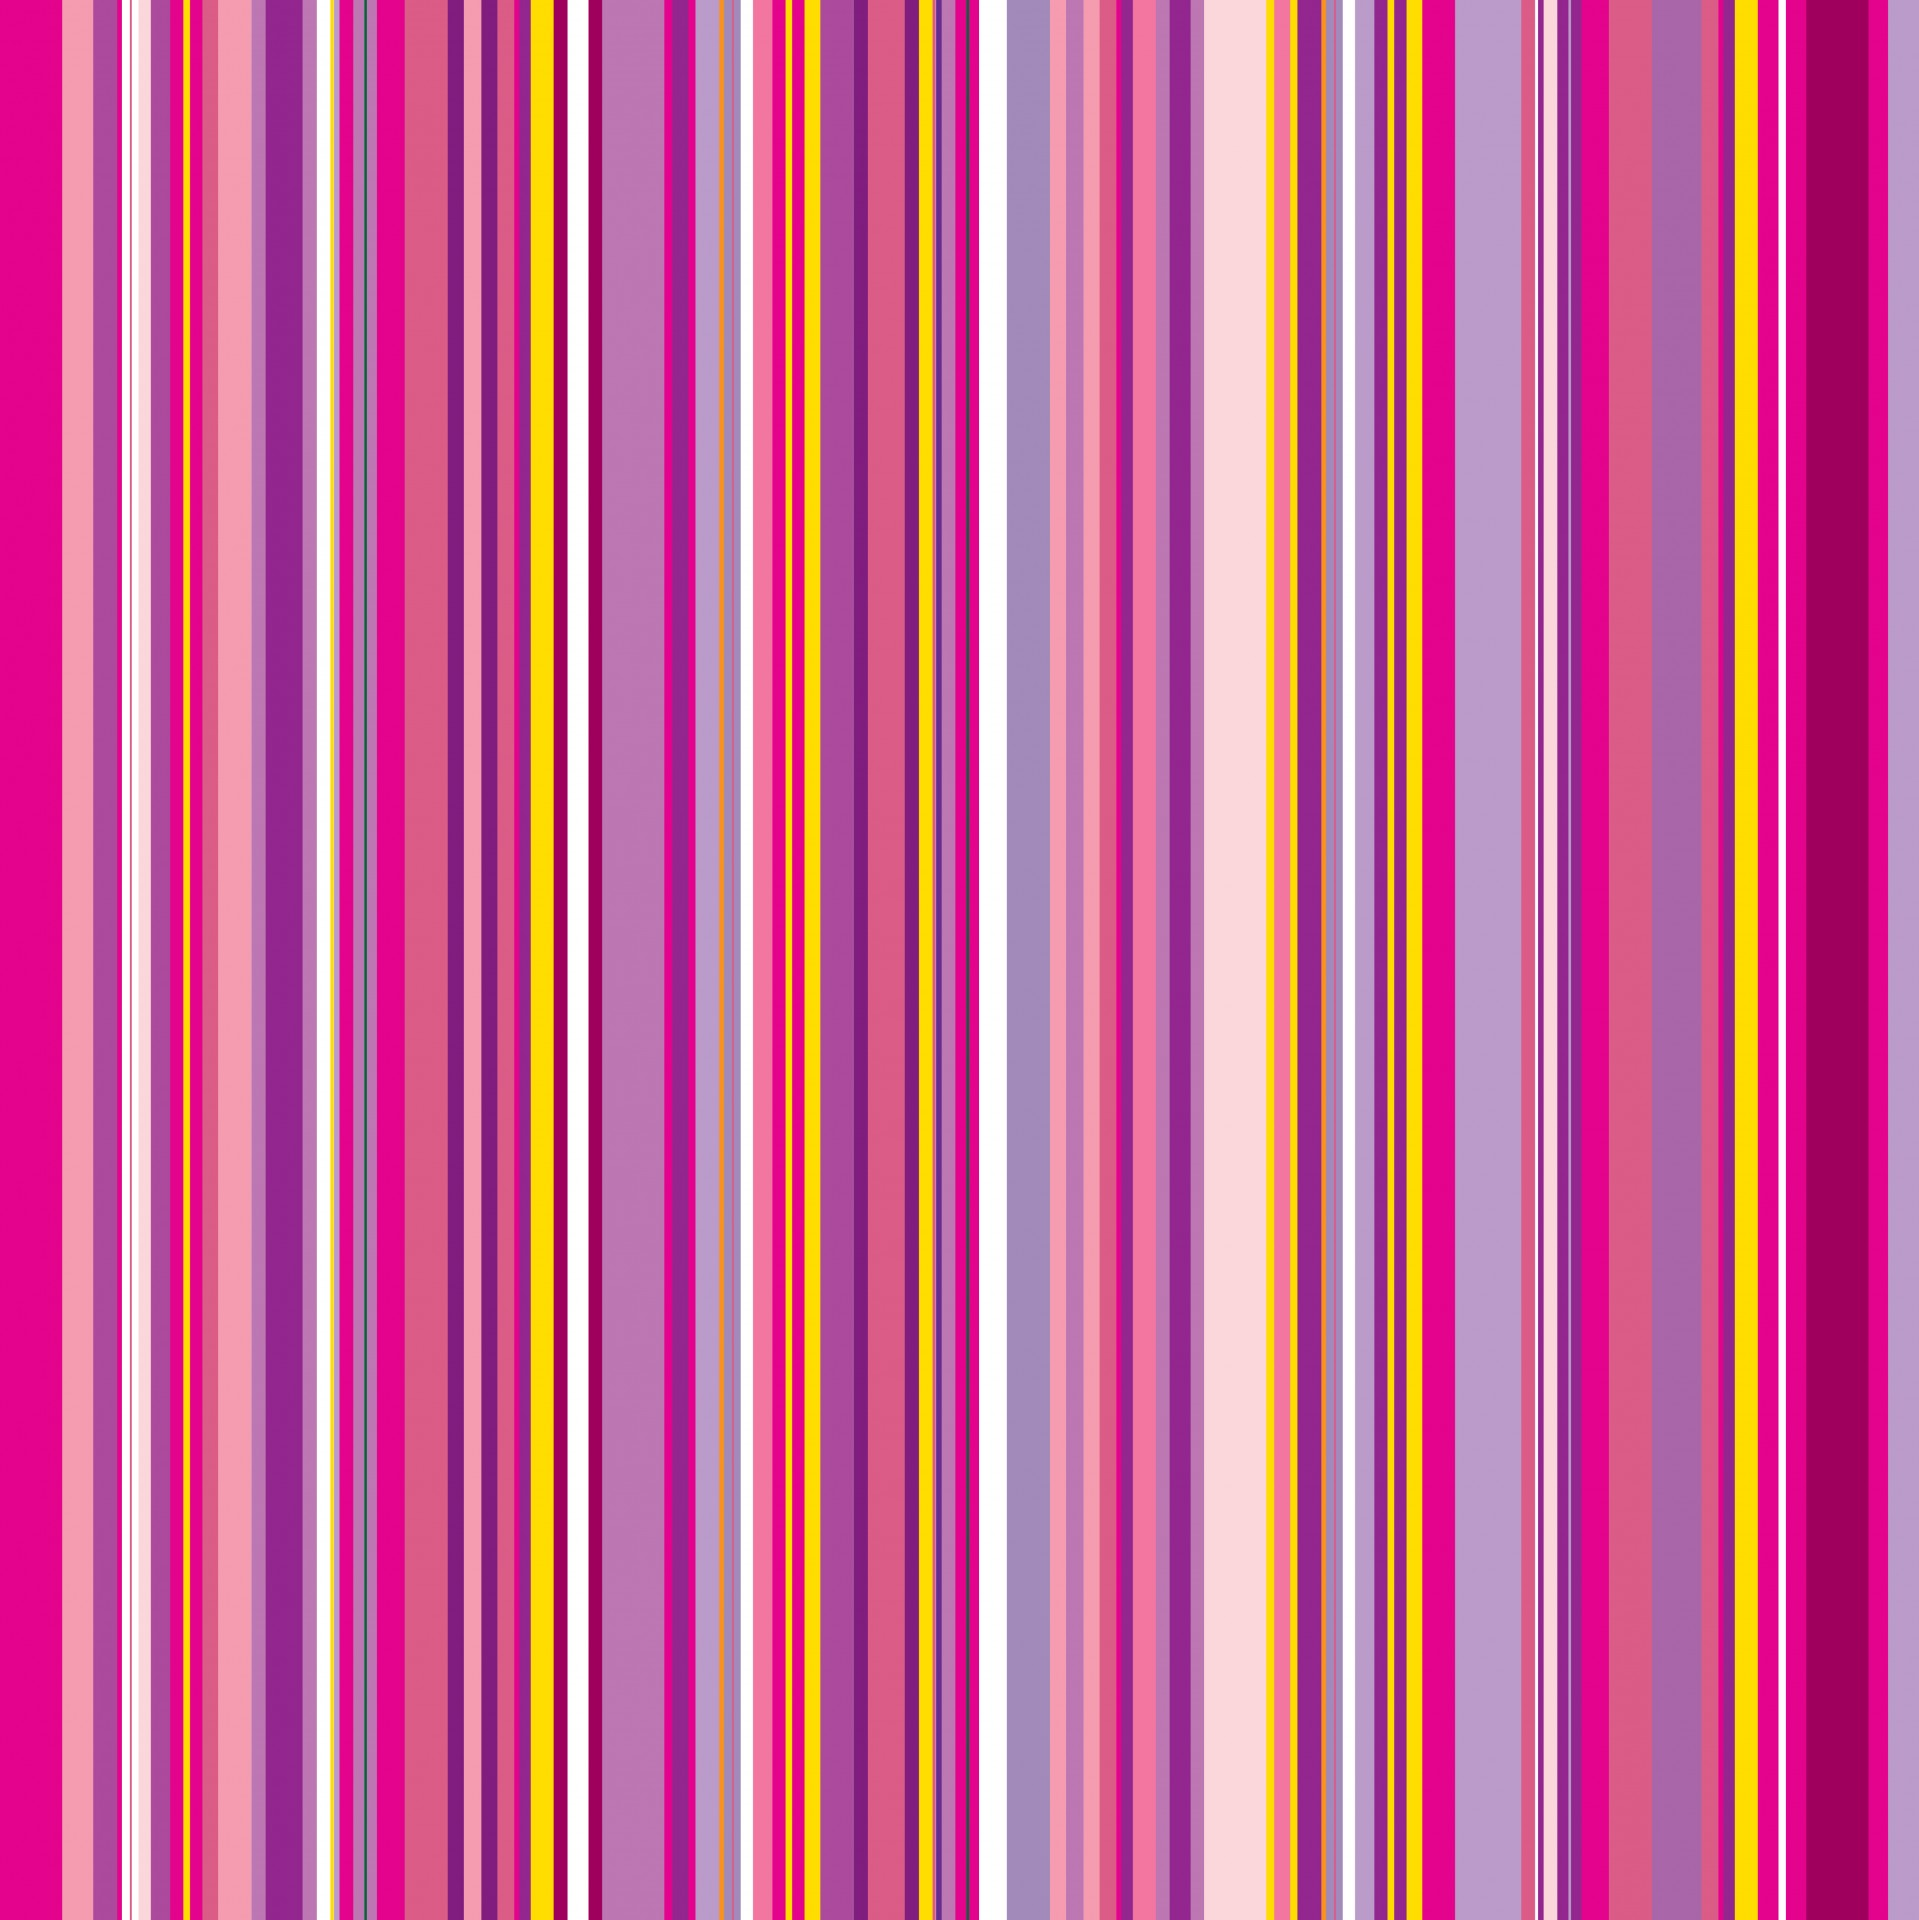 Rosas De Color Rosa Stripes Background Colorful Free Stock Photo - Public